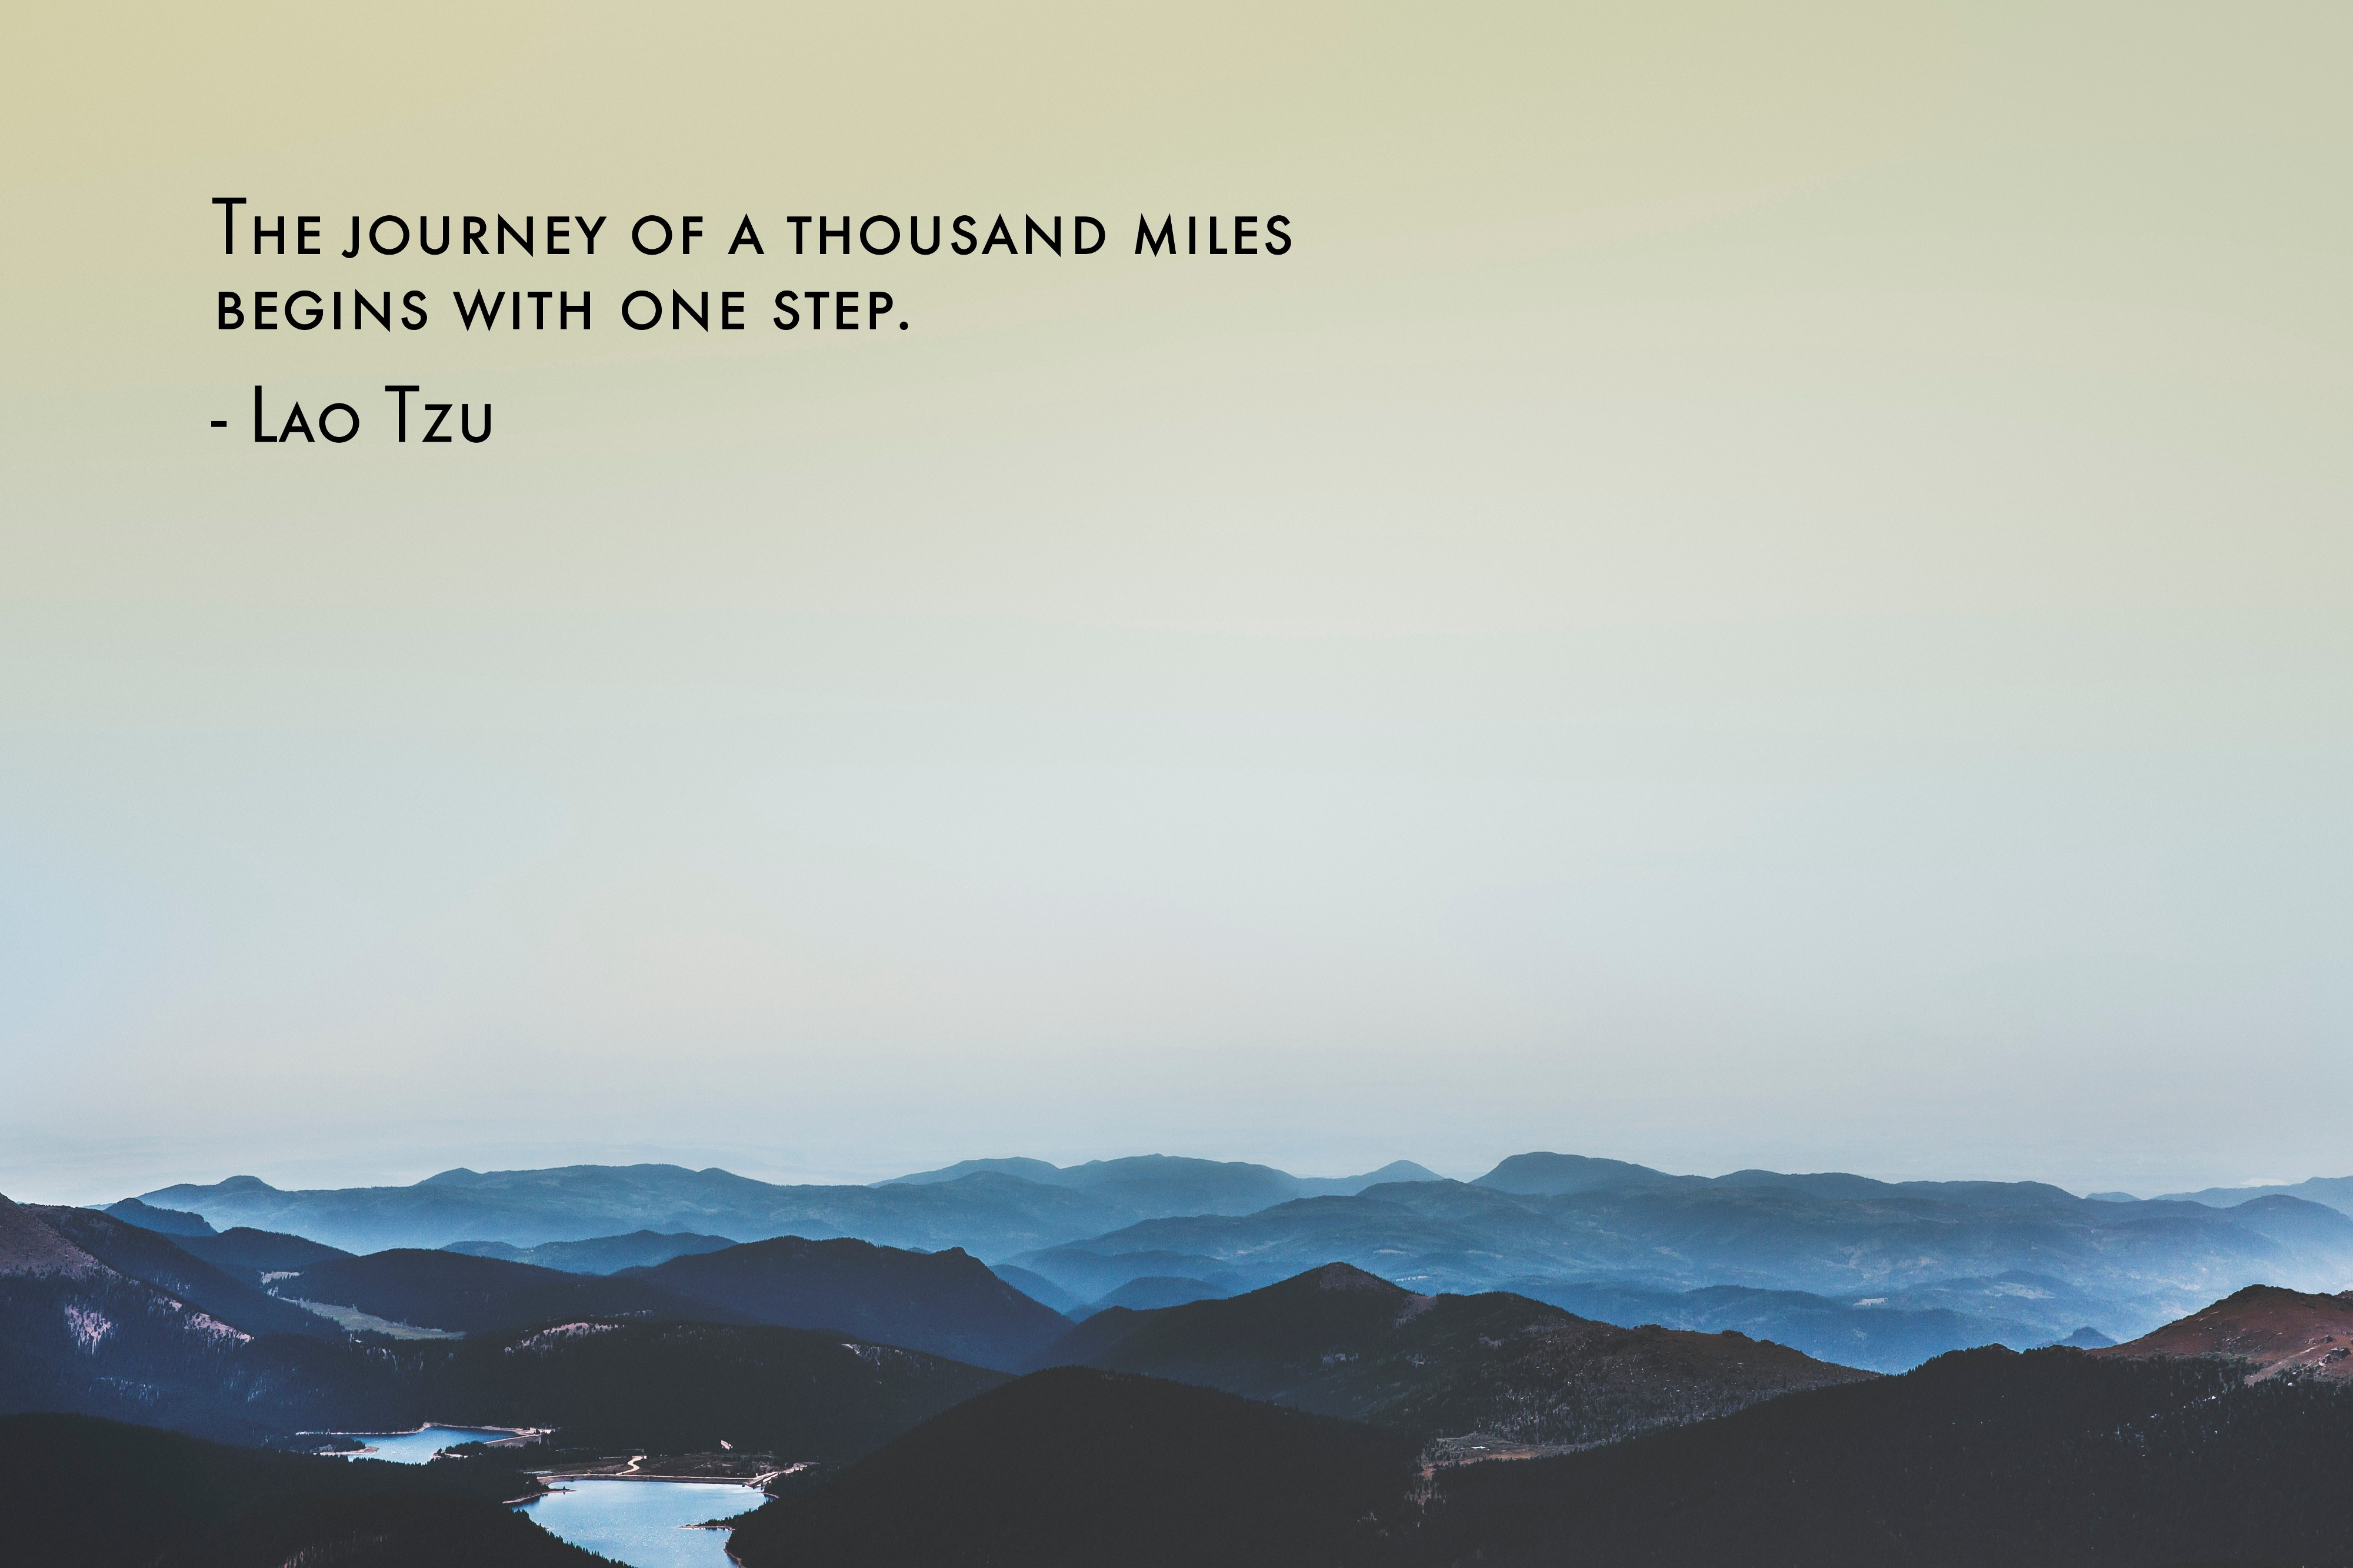 The Journey of 1000 miles begins with the first step. Lao Tzu